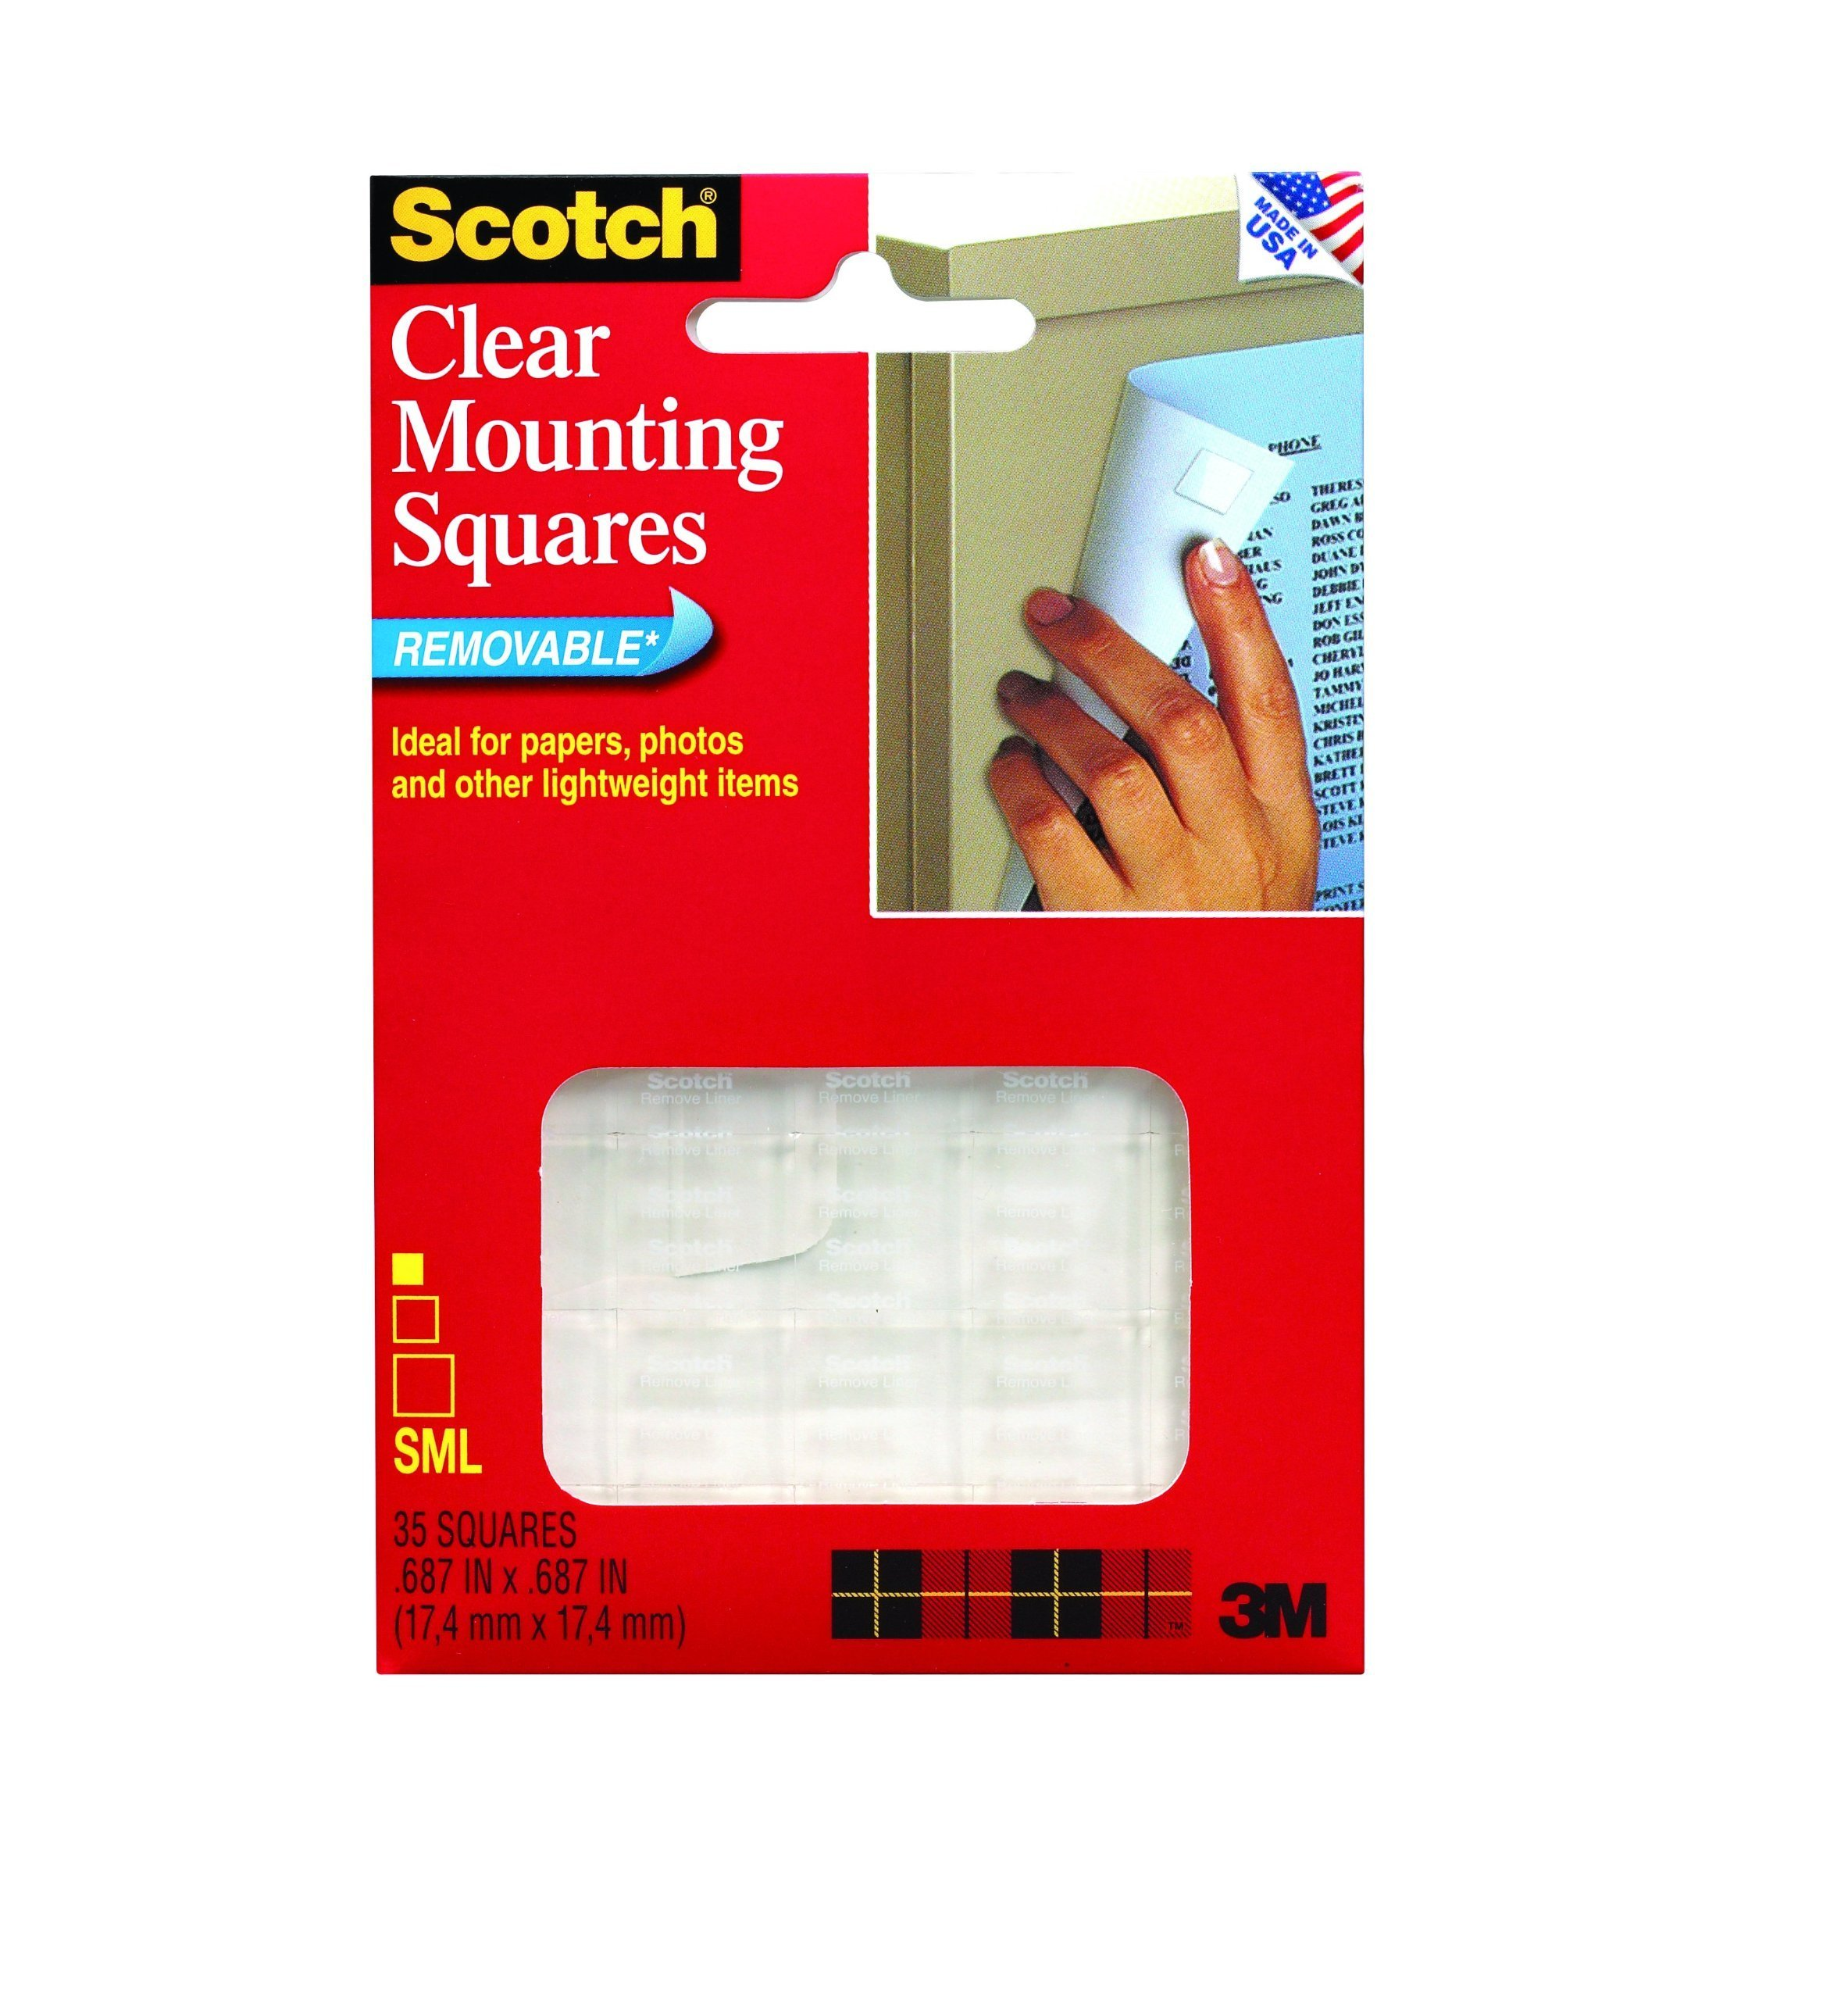 3M Scotch 859 Mounting Squares, Precut, Removable, x 11/16-Inch, Clear, 35 per Pack (MMM859), 11/16 x 11/16 Inch